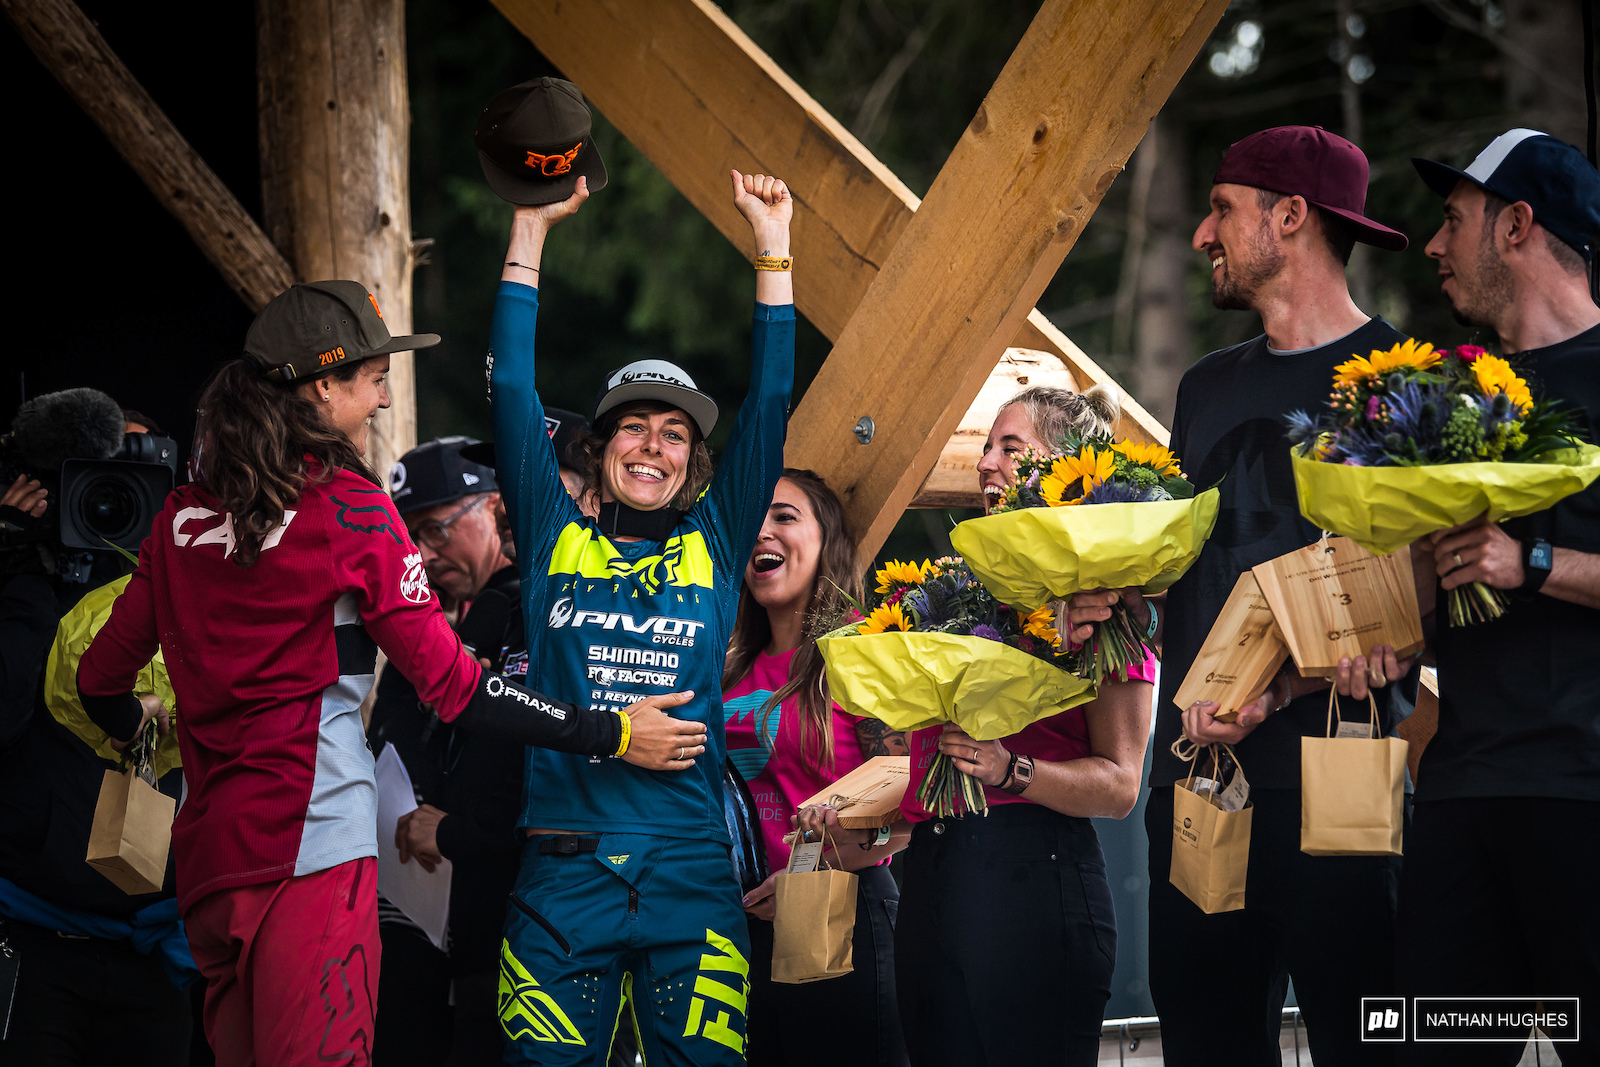 Siegenthaler stoked to make the top steps in Switzerland just a few tenths ahead of partner Balanche.